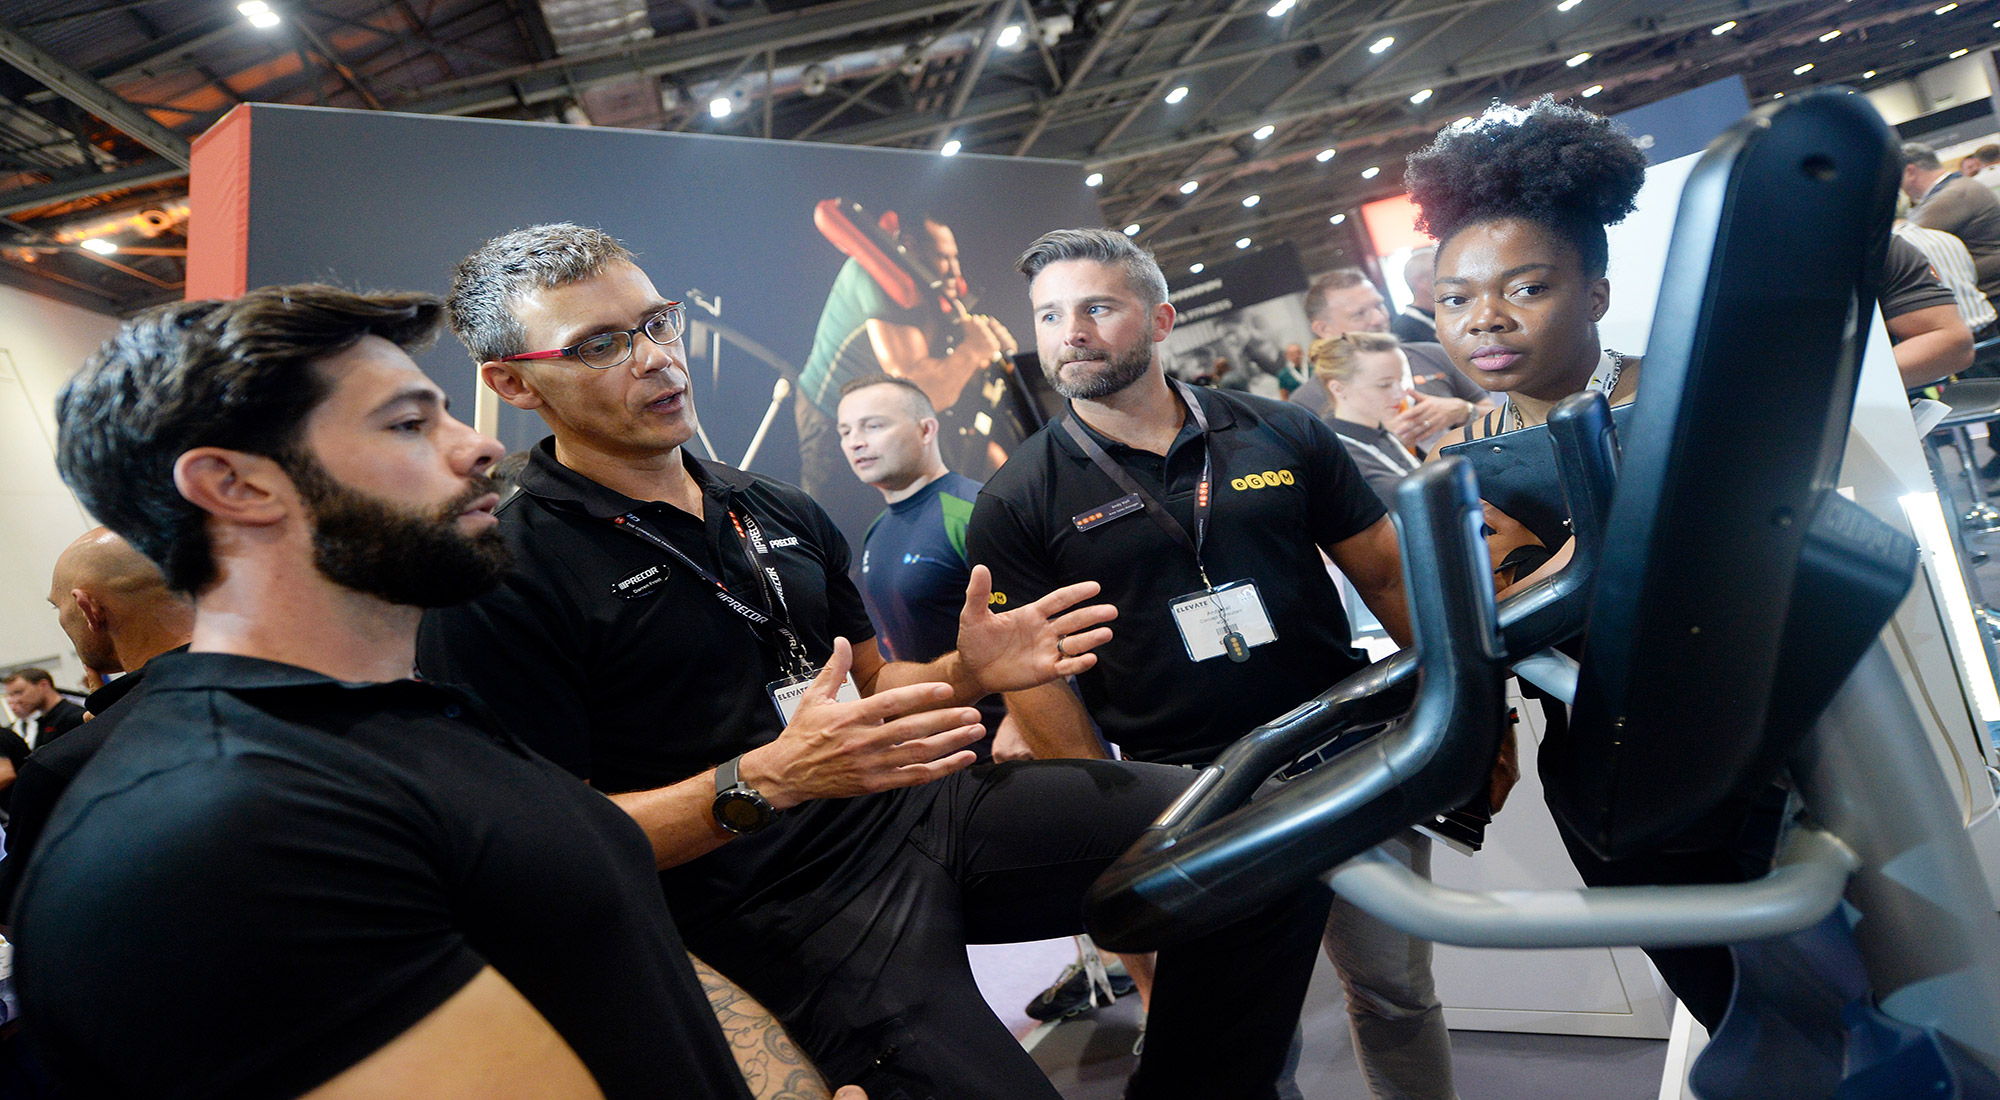 ukactive signs three-year strategic partnership with leading trade show Elevate